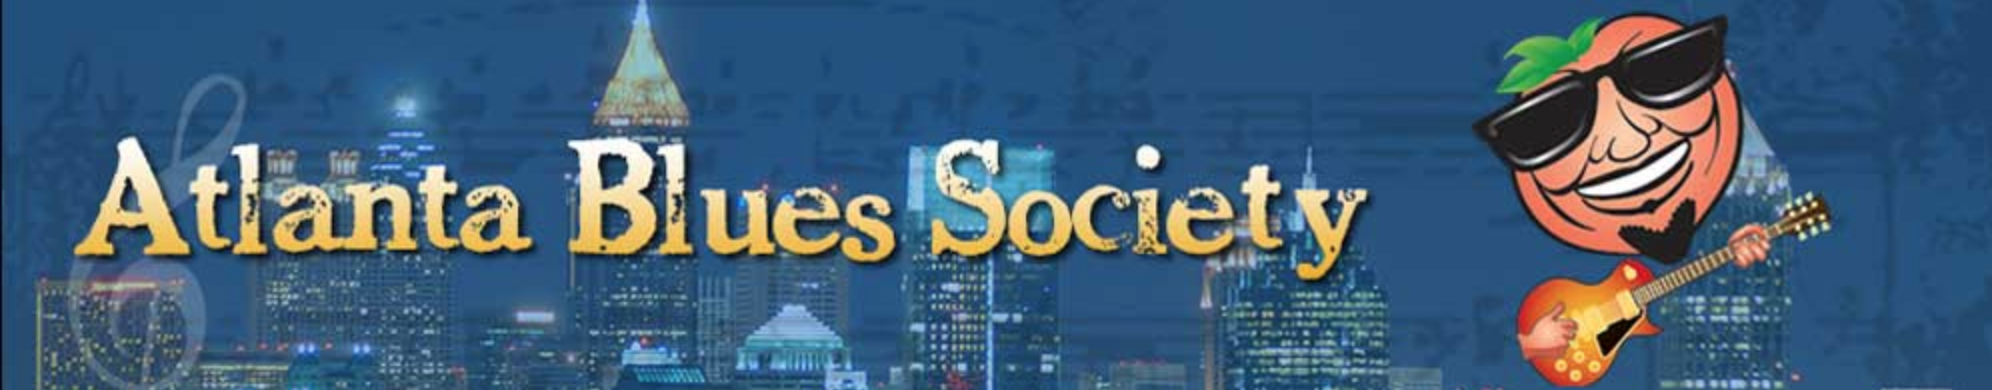 image of logo banner for Atlanta Blues Society